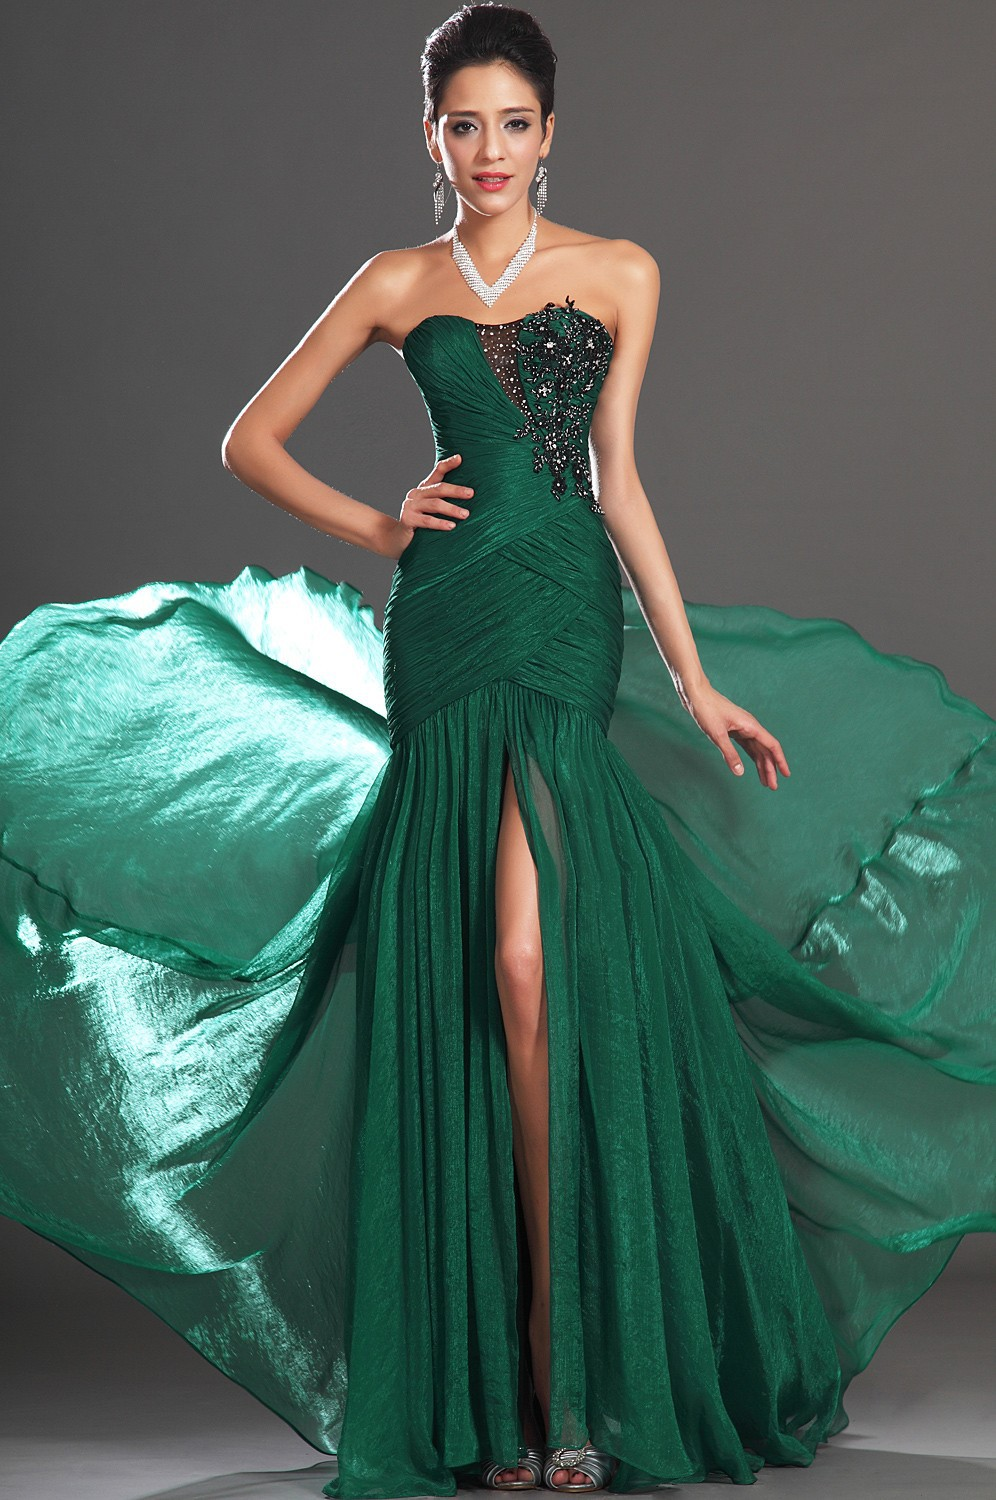 Elegant Emerald Green Color Sweetheart Appliques Front Slit Mermaid Style Prom Party Evening Dresses Formal Gowns 2013-in Evening Dresses from Apparel & Accessories on Aliexpress.com